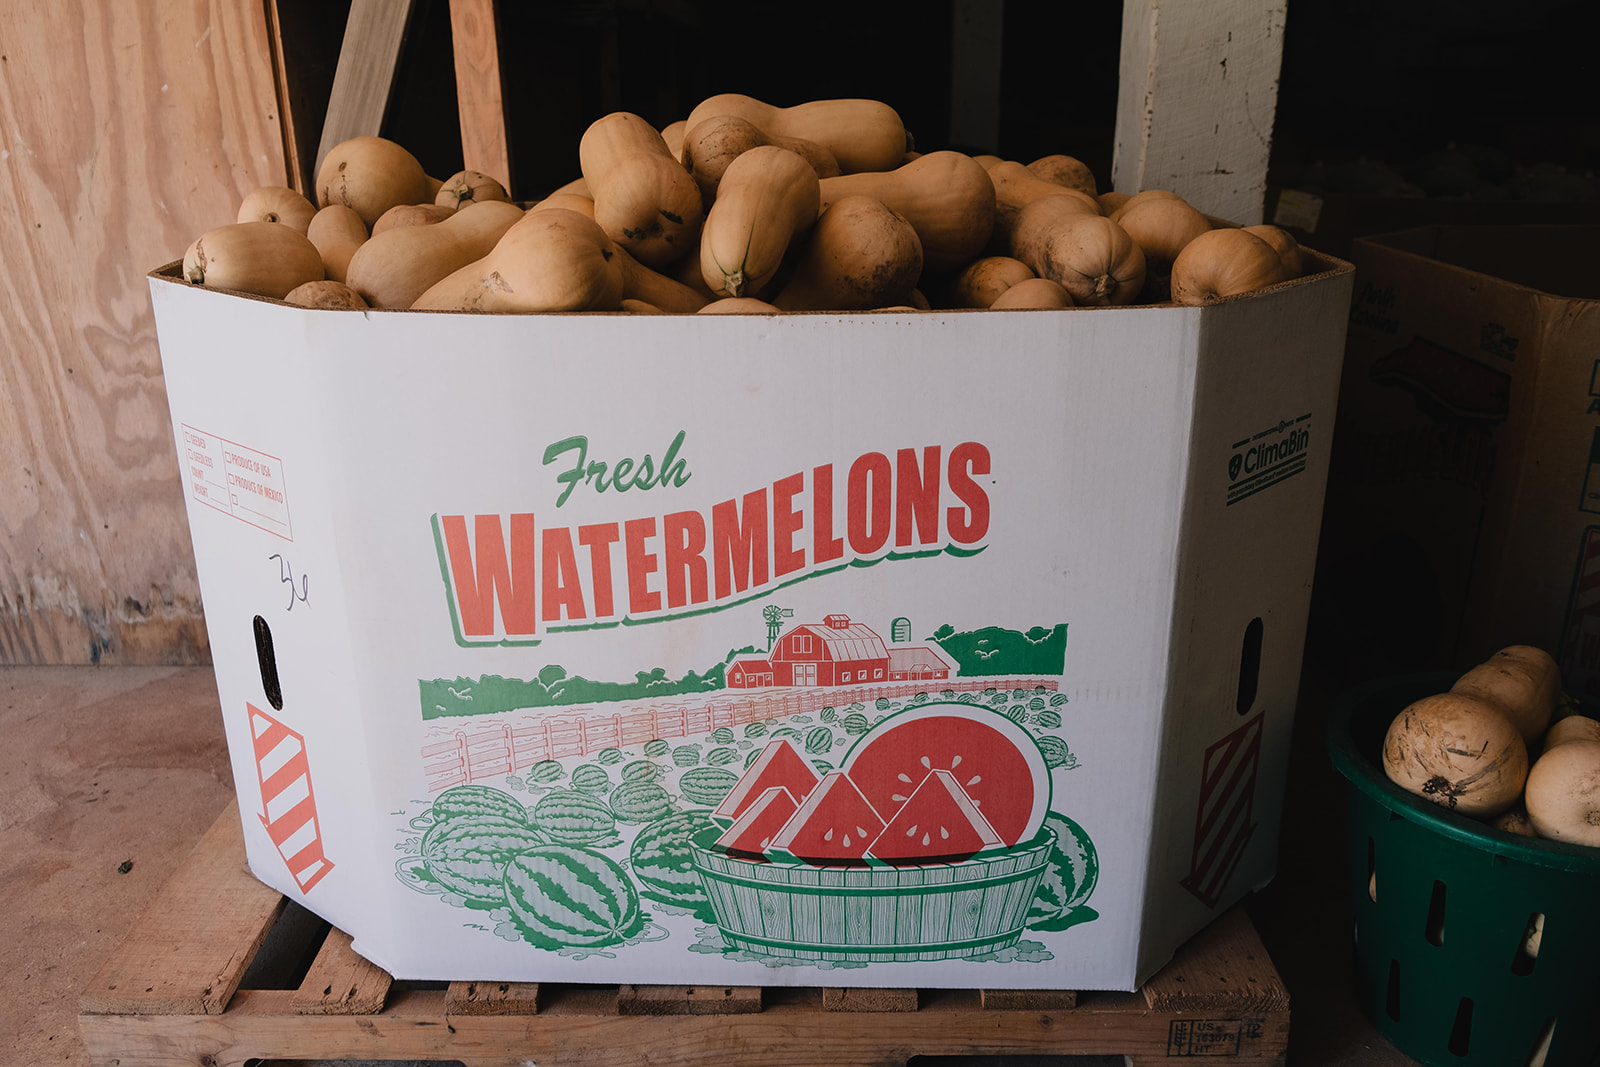 squash in a watermelon box